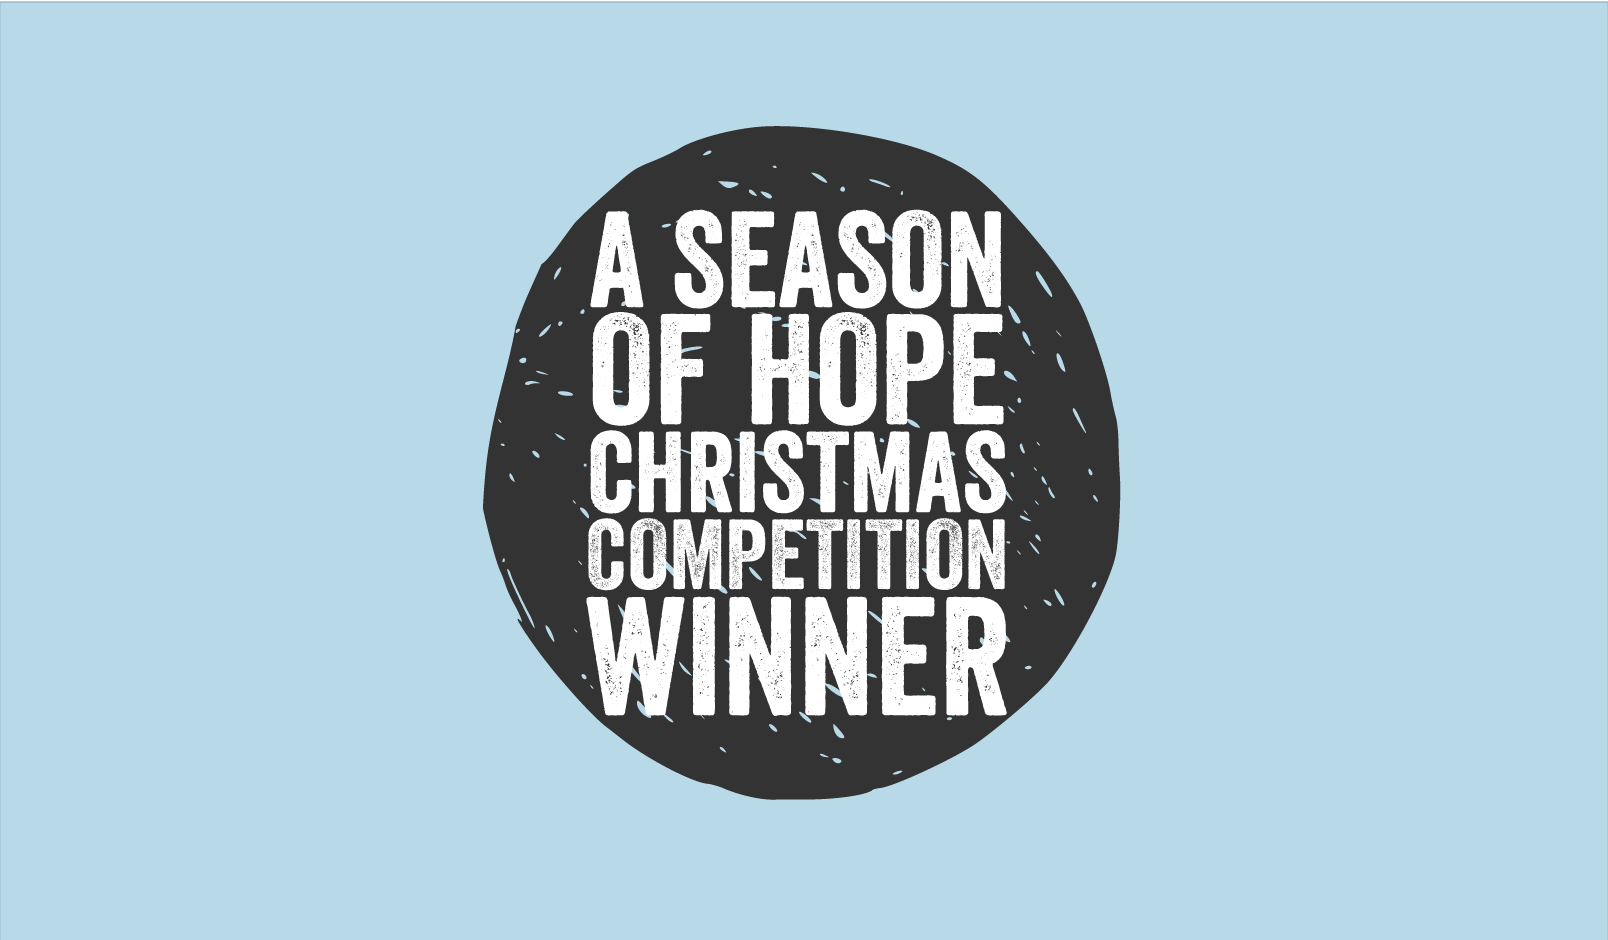 A Season of Hope Competition Winner